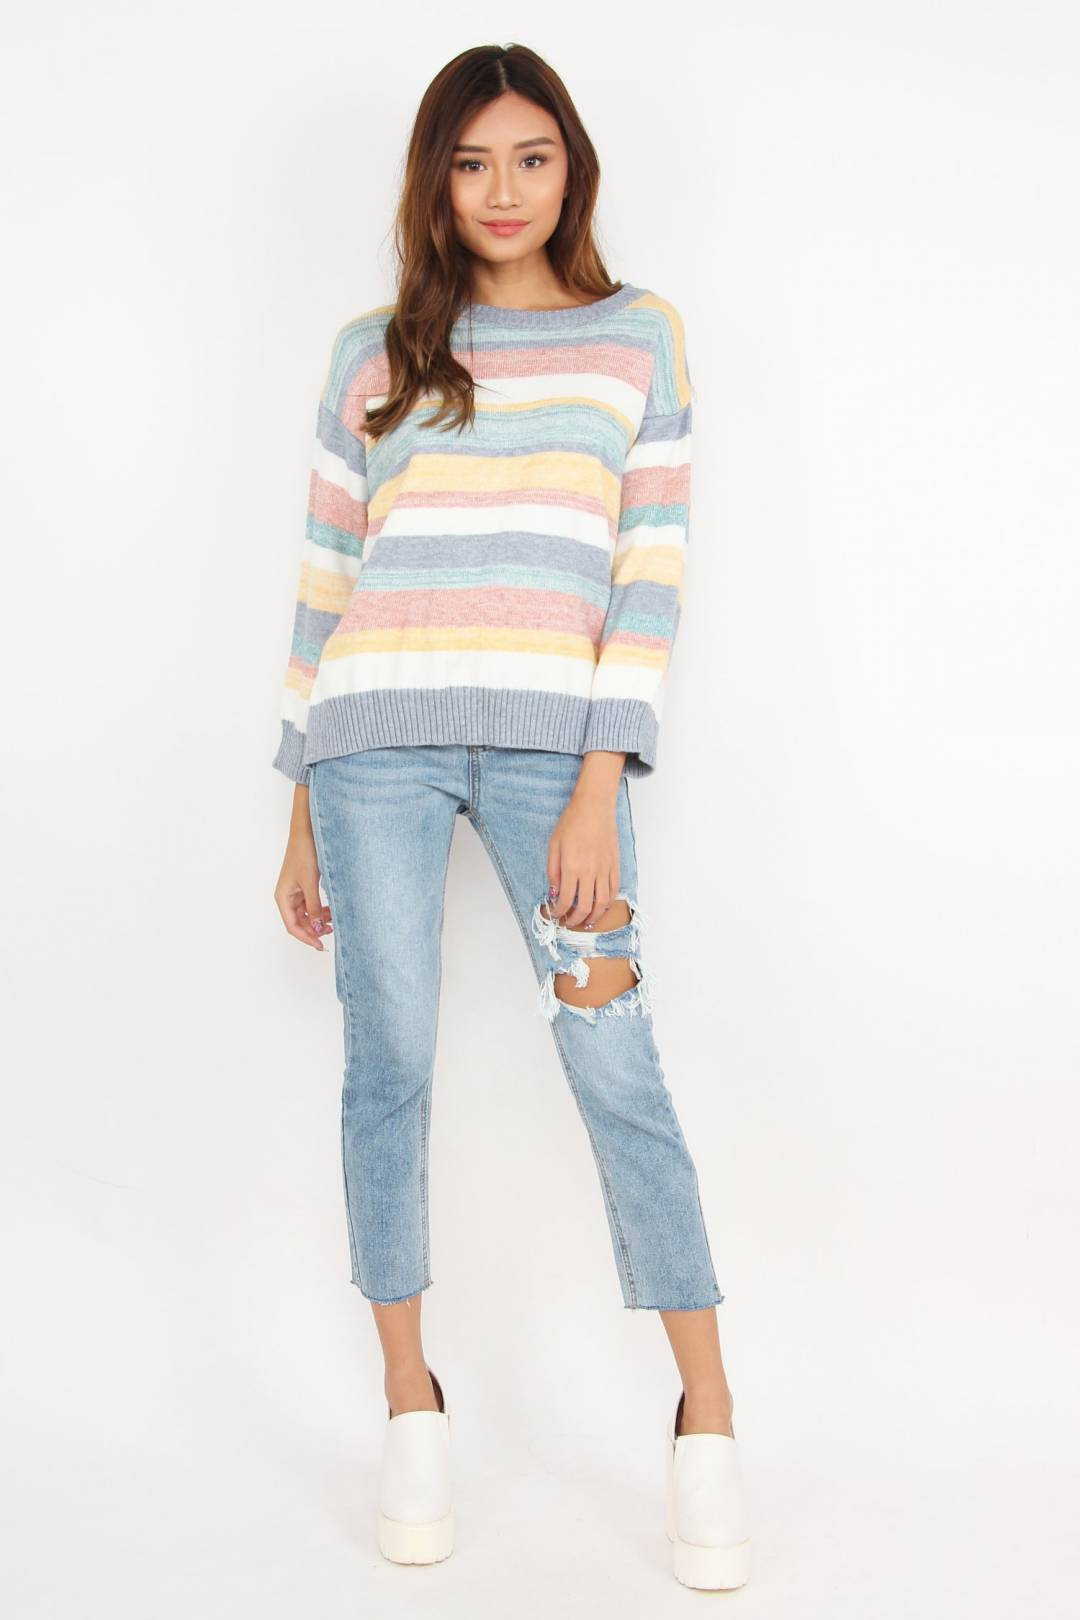 Candy Dreaming Knitted Sweater (Rainbow)